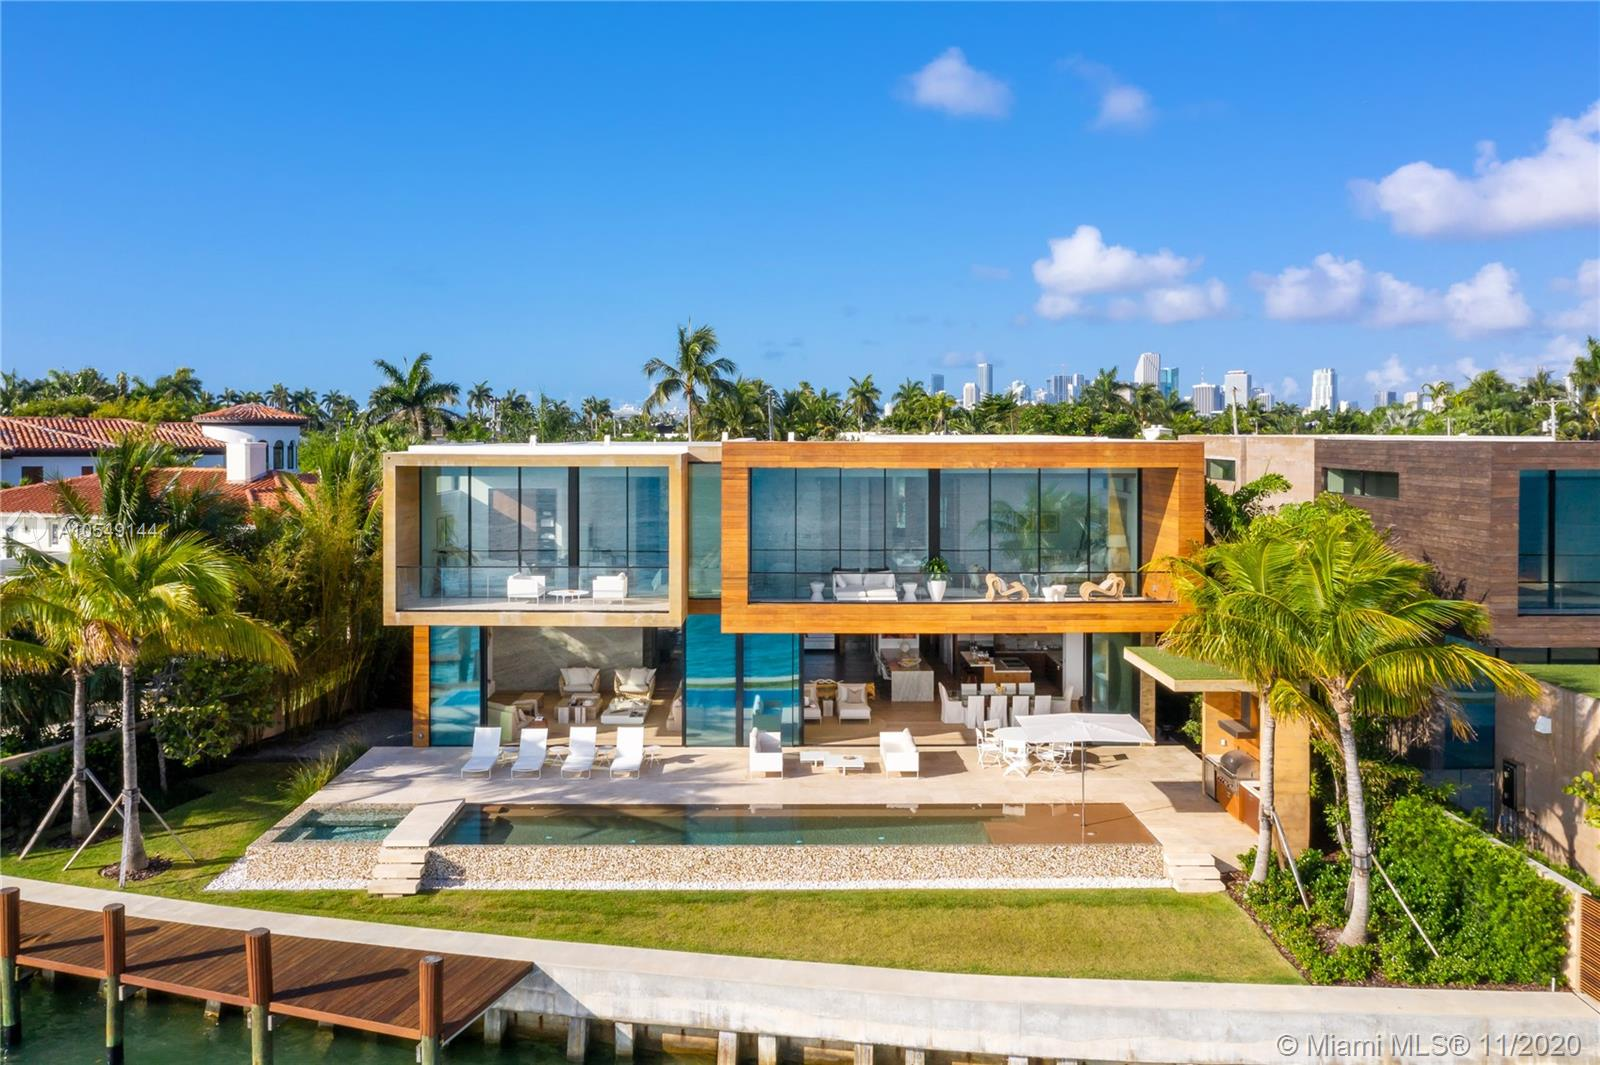 ULTRA MODERN NEW WATERFRONT ARCHITECTURAL MASTERPIECE DESIGNED BY CHOEFF LEVY FISCHMAN ARCHITECTURE & FURNISHED BY ARTEFACTO ON THE VENETIAN ISLANDS! This Wide Bay Tropical Modern Villa is Built with Post Tension Slab Construction & 12' Vitrocsa Glass Invisible Wall Systems. A Rare Find- Newly Built under previous City of Miami Beach Codes to allow for higher ceilings & unique layout w Master Bedroom & Bath + 2 Guest Suites on Water. Family Villa w 7 Beds, 7.5 Baths + Maid's in 8,048 Adj Gross Sq Ft of Living Space on 14,224 Sq Ft Lot w 107' of Waterfront. Double-Sided Infinity Pool w Spa & Rainwater Re-harvesting system; Ipe Wood Dock + New Seawall; Board-Formed Exposed Concrete Structure; Brazilian Cumaru Wood Finishes & White Oak Flooring Thruout; Lutron Home Automation; 80kW Generator.